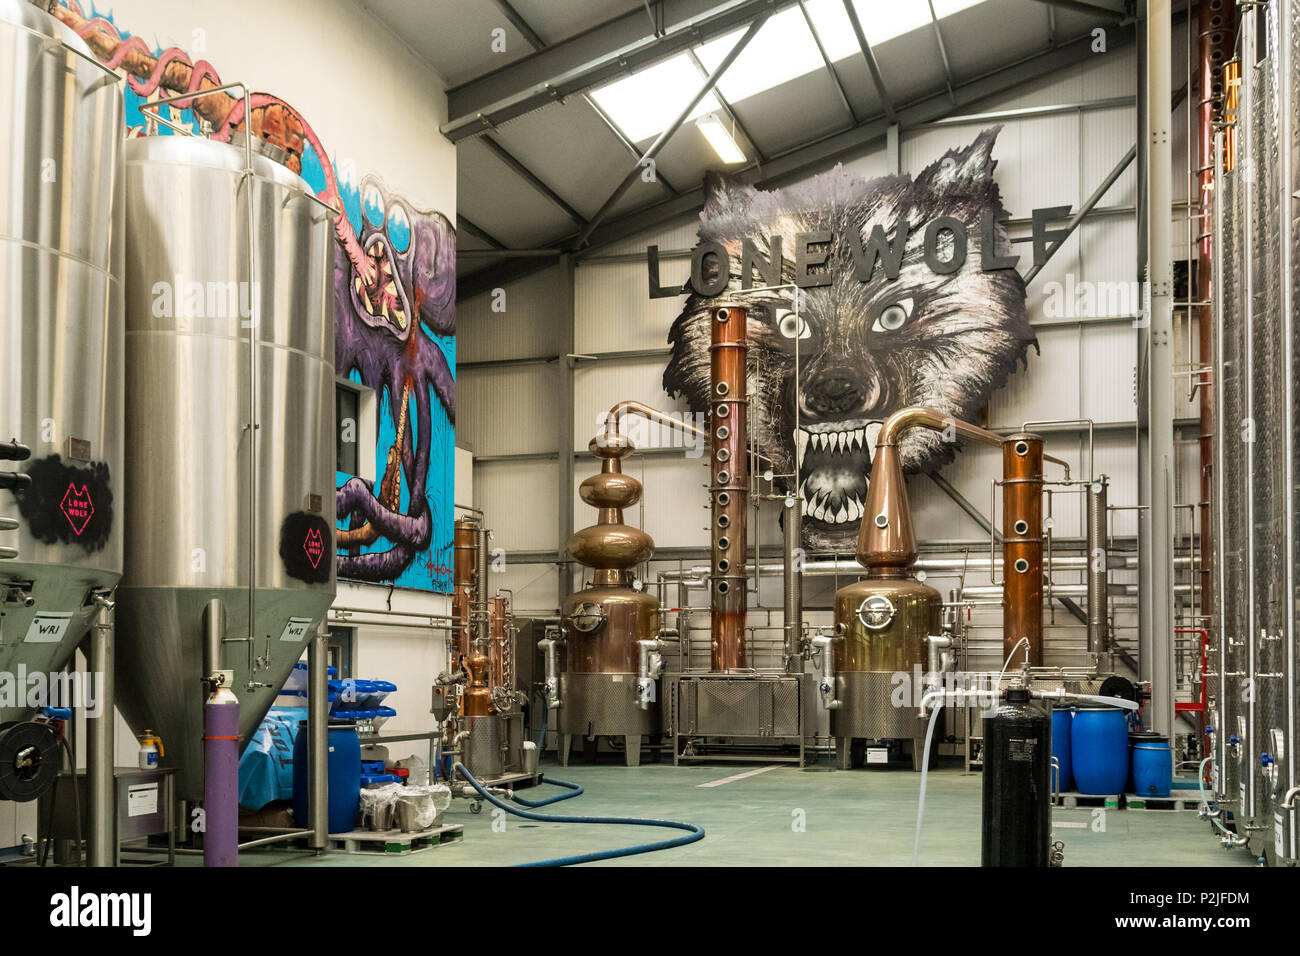 Lone Wolf gin distillery at Brewdog distillery, Ellon, Aberdeenshire, scotland, UK - Stock Image